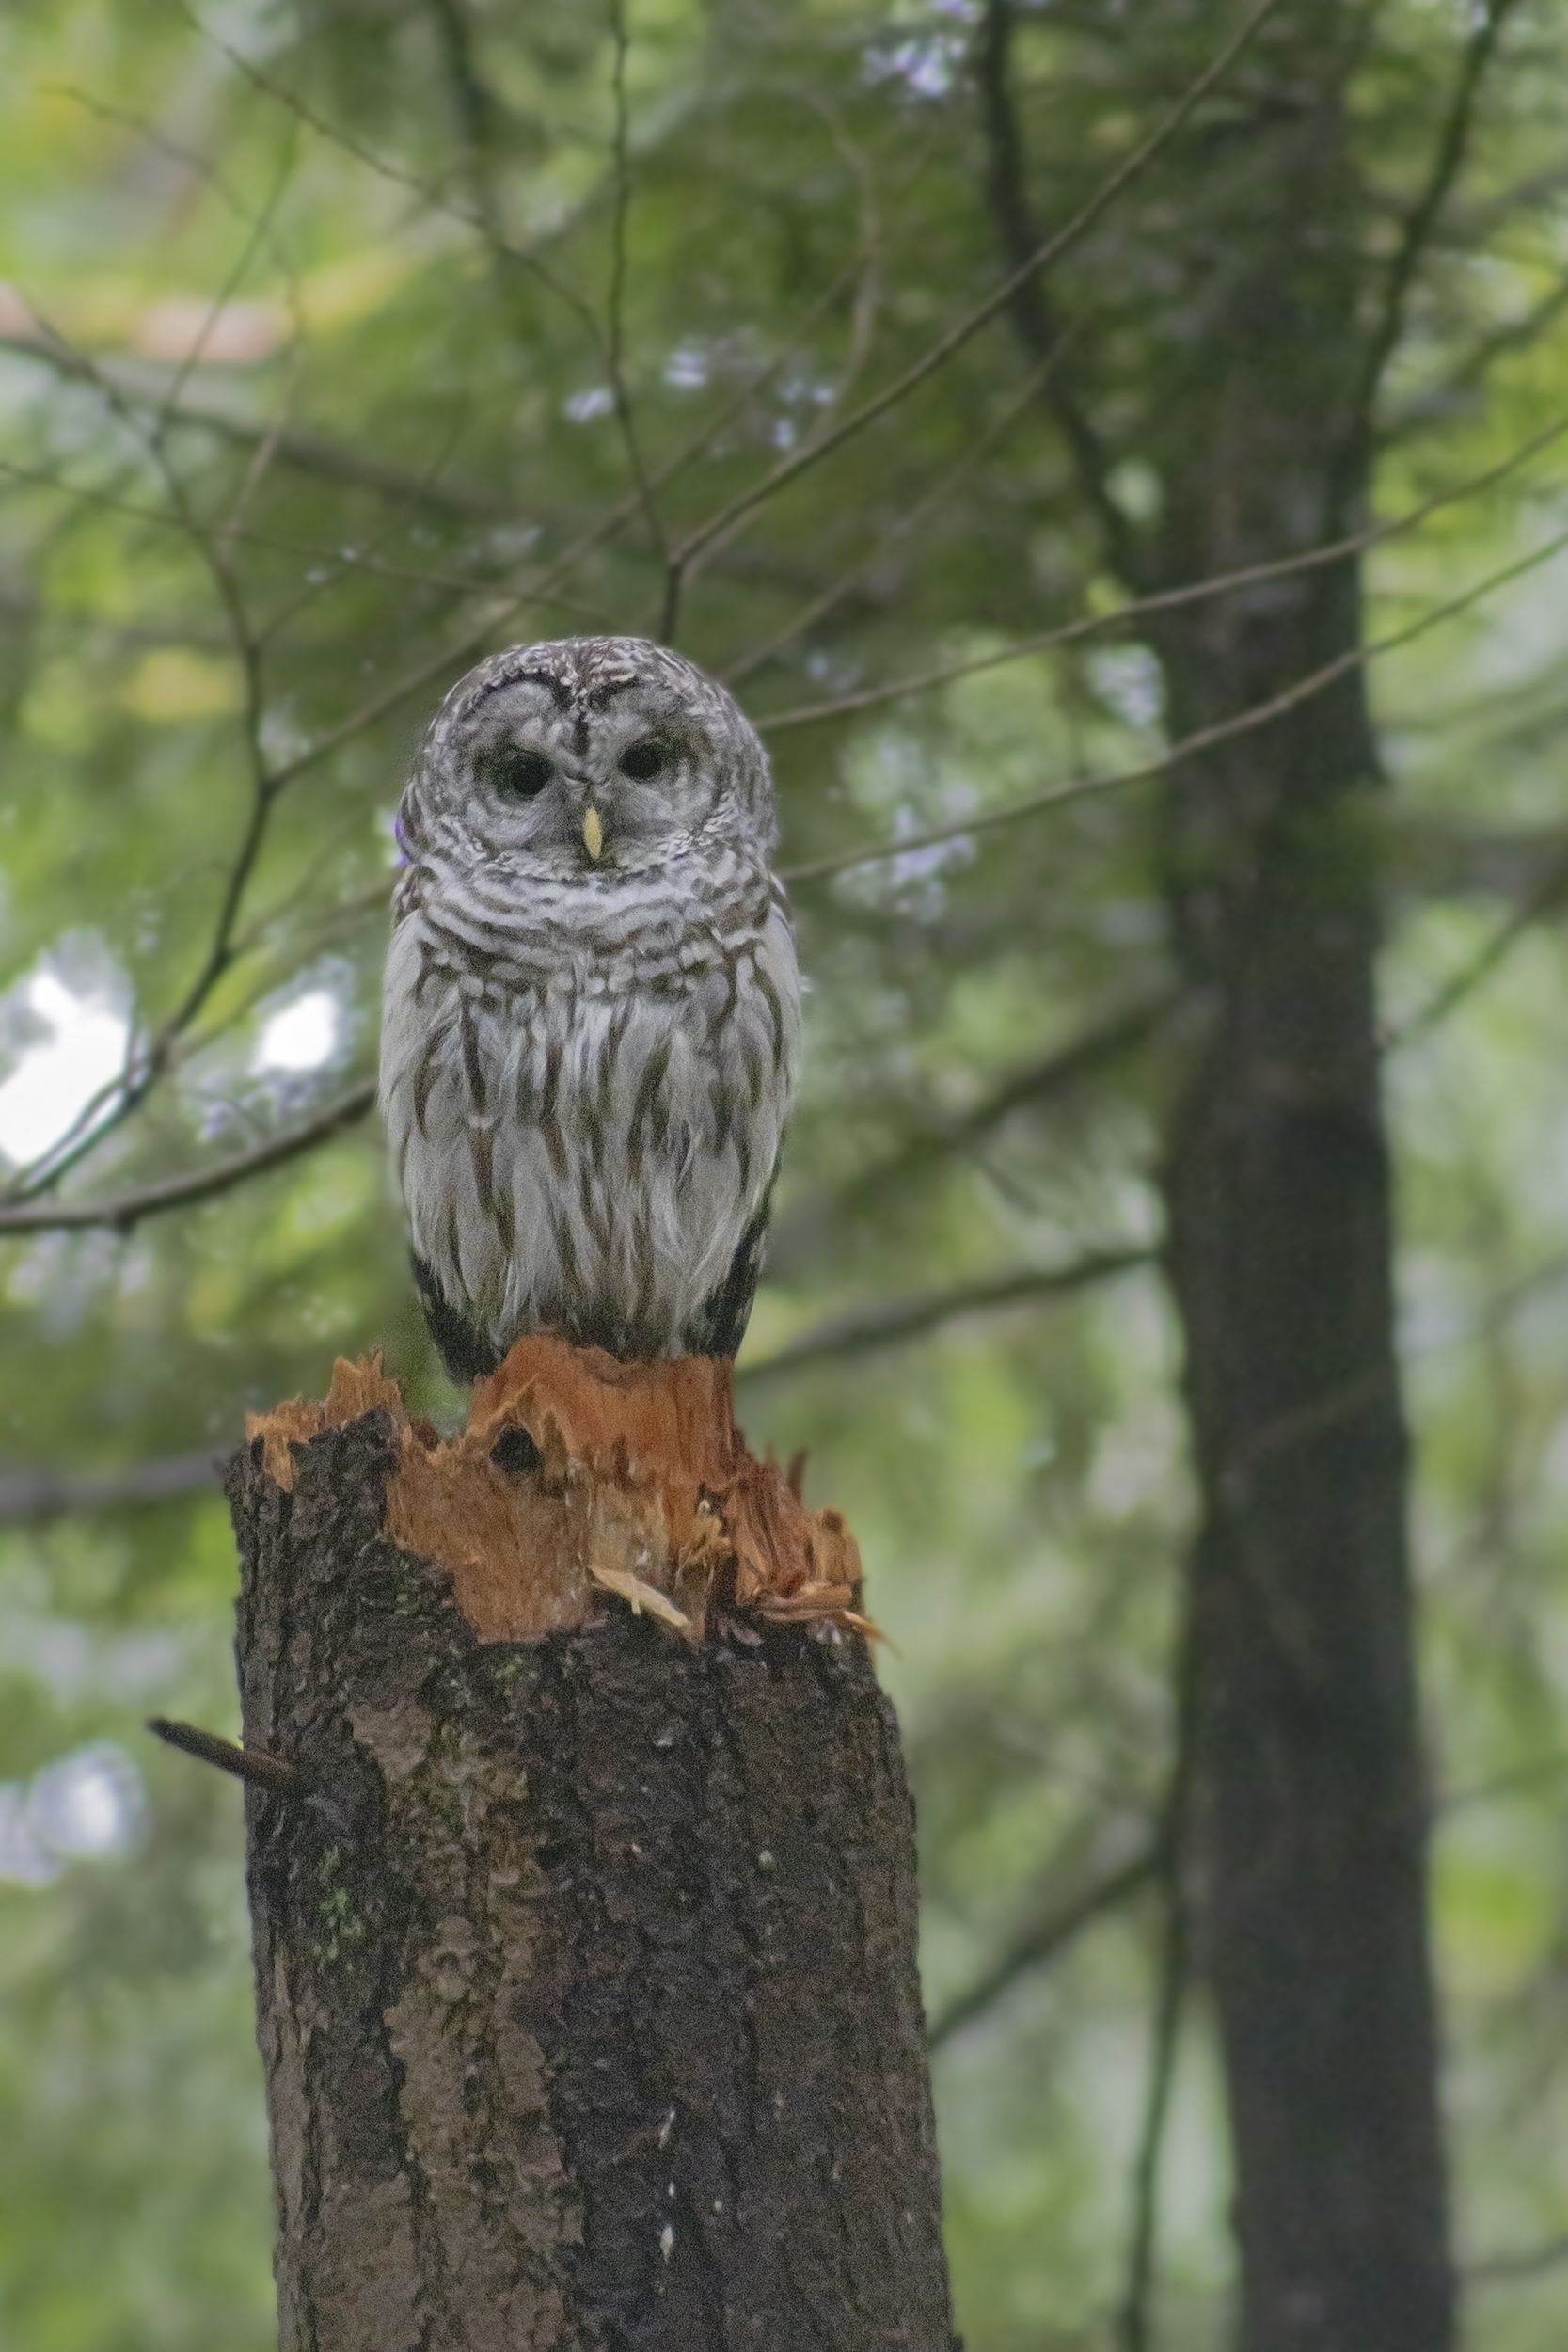 Barred Owl in the Watershed, June 13 2021